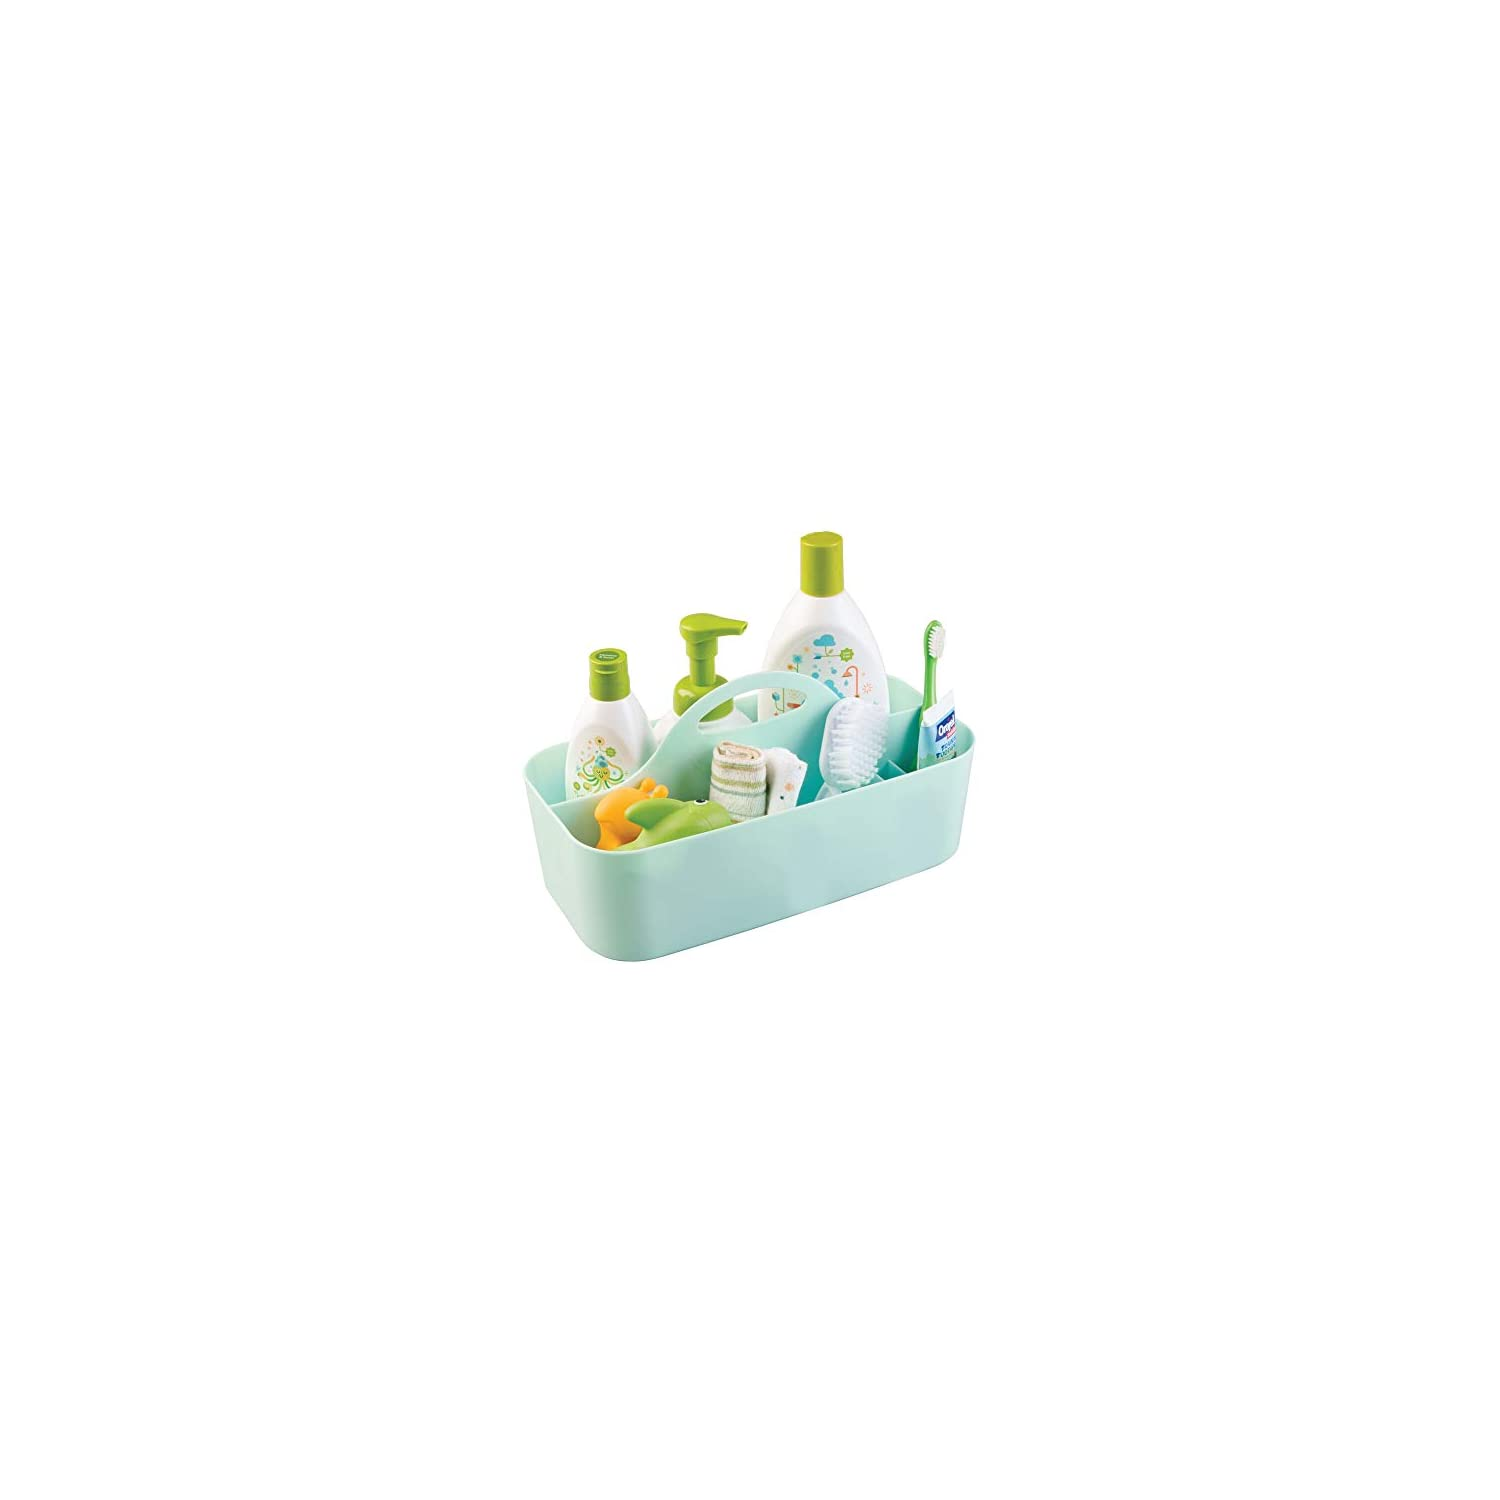 mDesign Plastic Portable Nursery Storage Organizer Caddy Tote – Divided Basket Bin with Handle – Holds Bottles, Spoons, Bibs, Pacifiers, Diapers, Wipes, Baby Lotion – BPA Free – Large – Mint Green